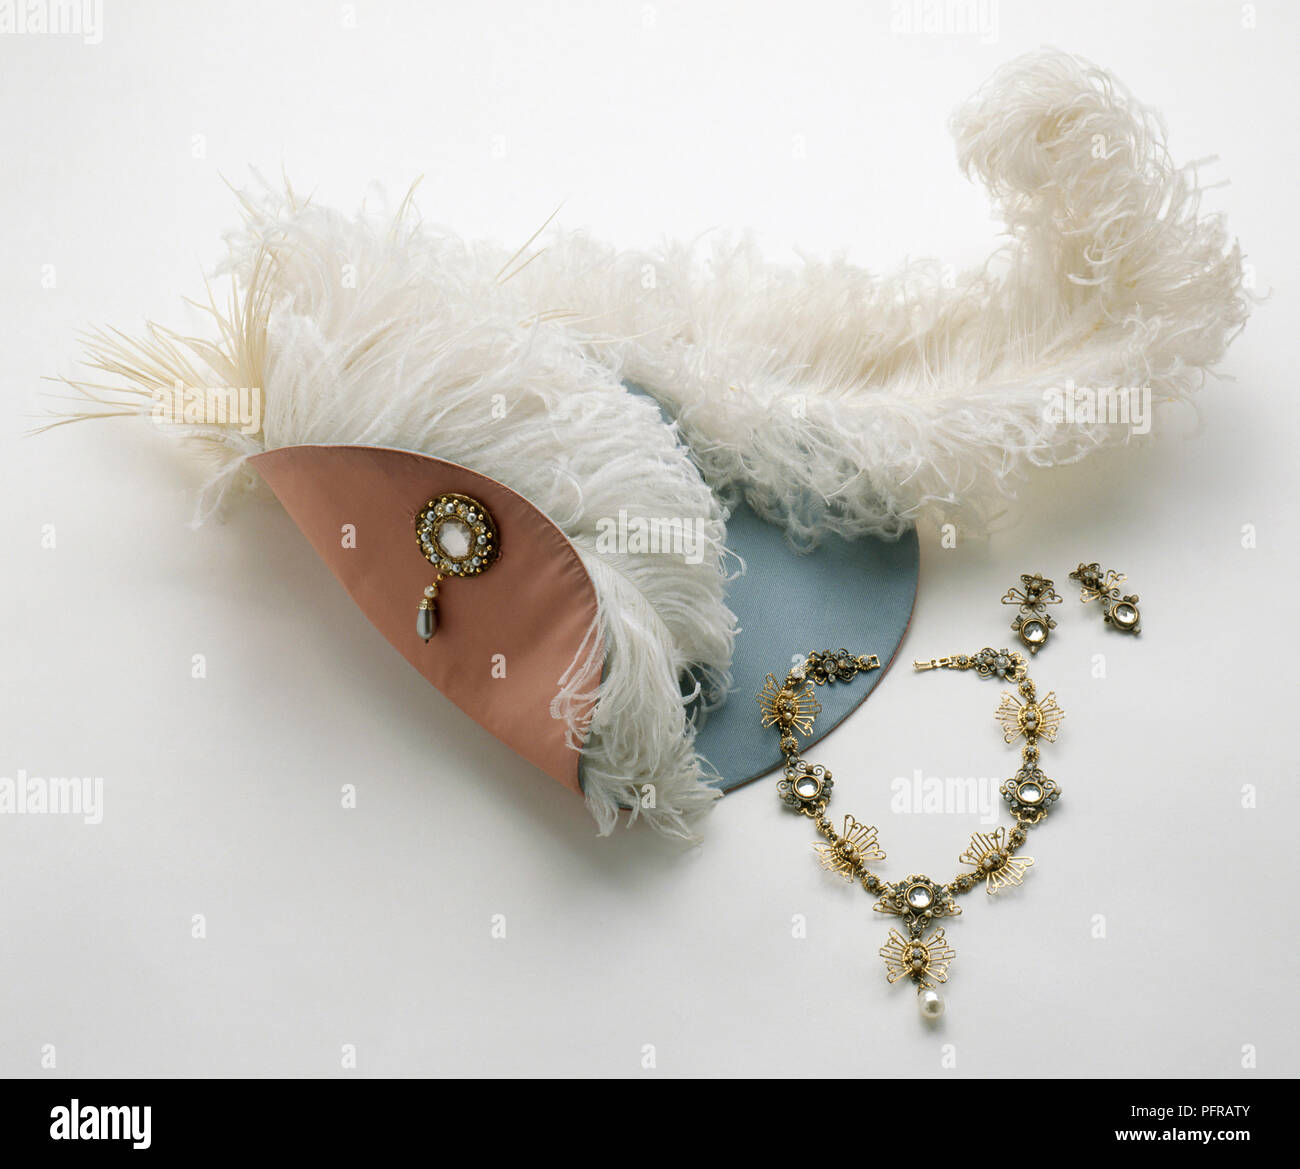 Feather hat, necklace and earrings worn in the movie The Three Musketeers - Stock Image